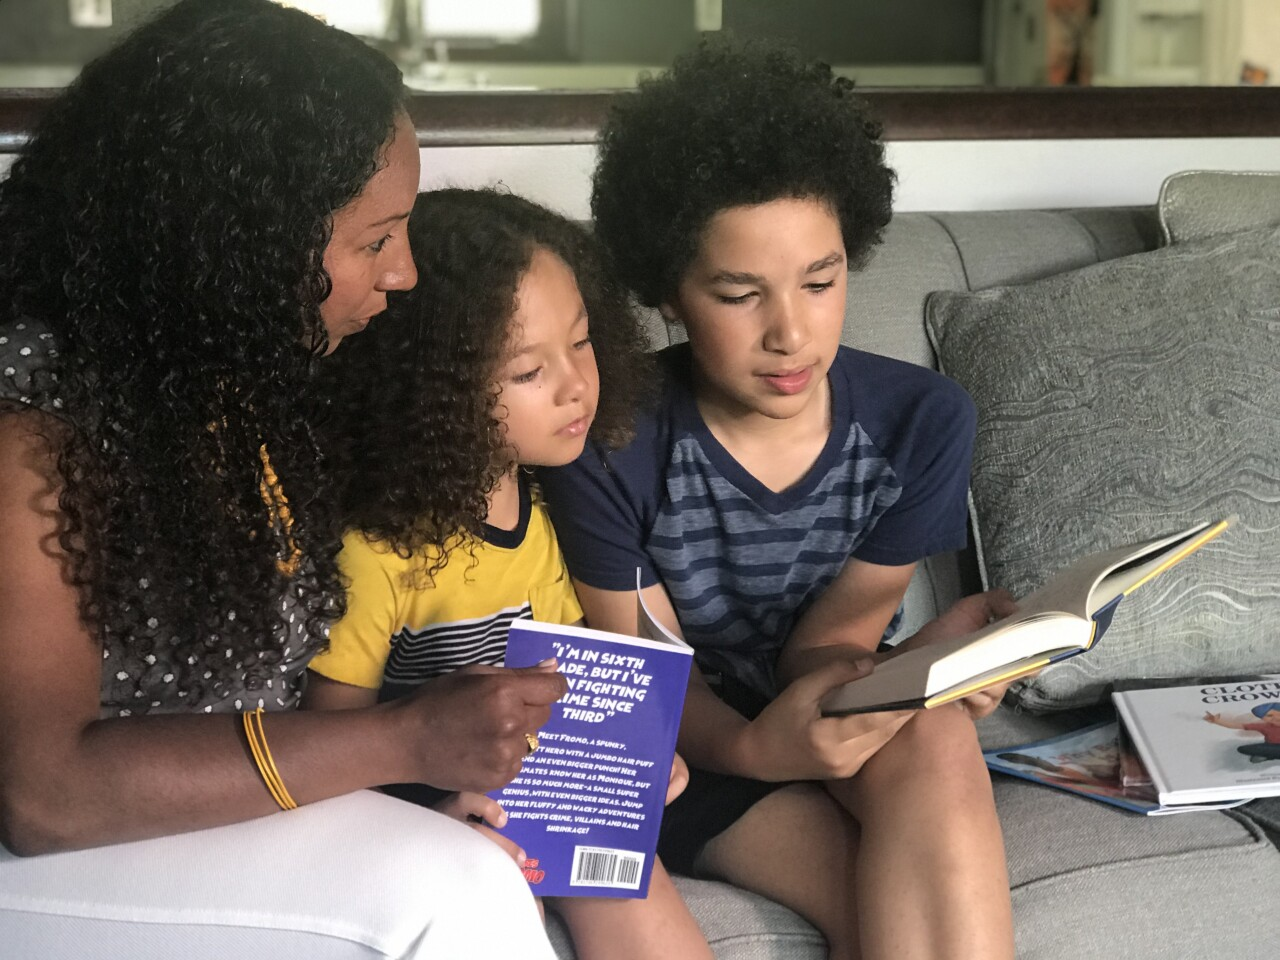 Deanna, Zion and Zephaniah reading